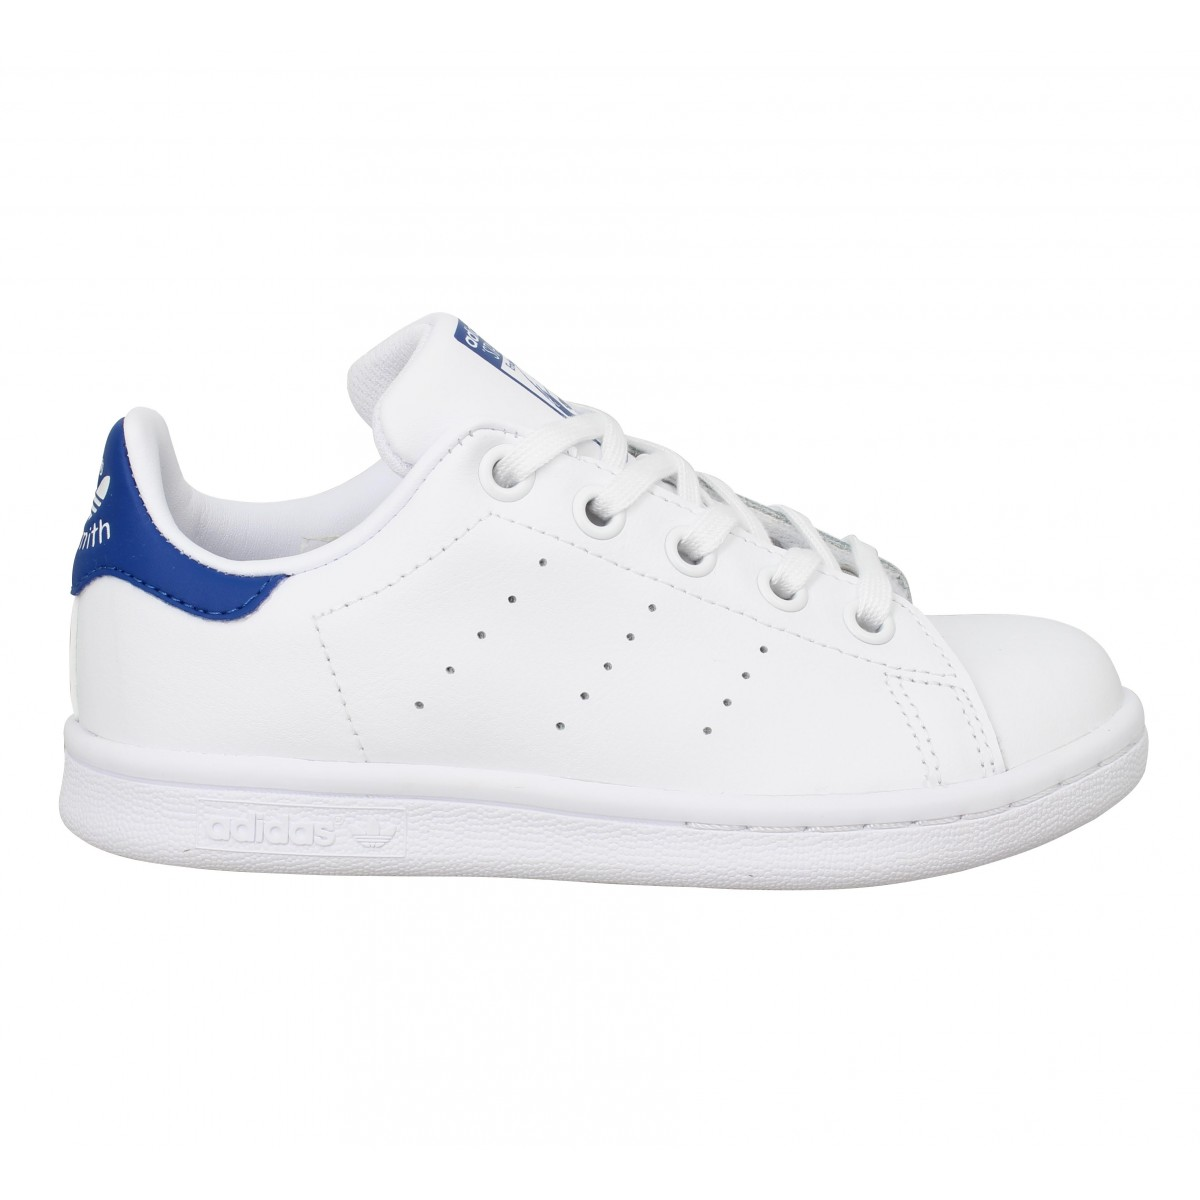 adidas stan smith garcon bleu